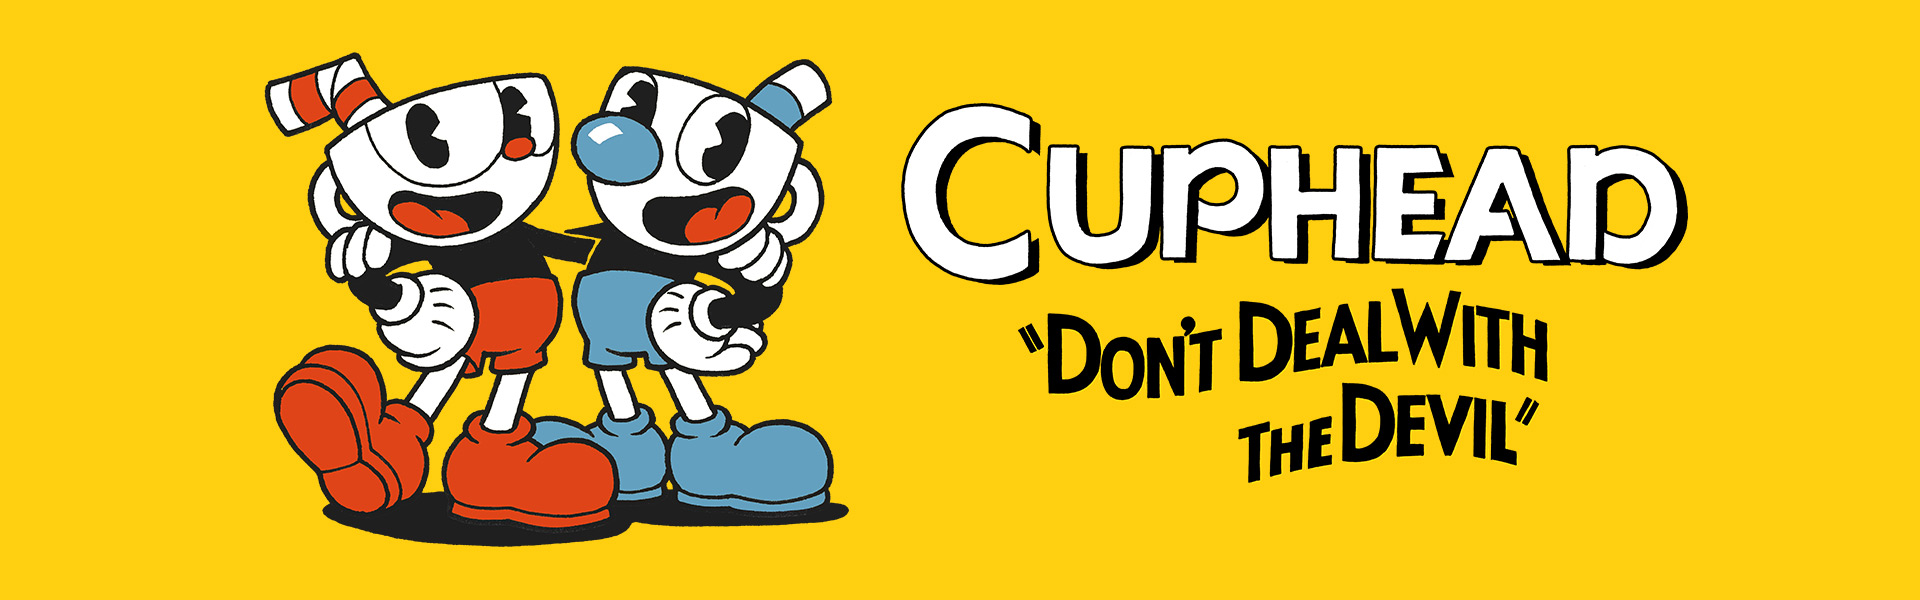 cuphead, Don't Deal with the Devil, cuphead mugman and ms. chalice characters posing